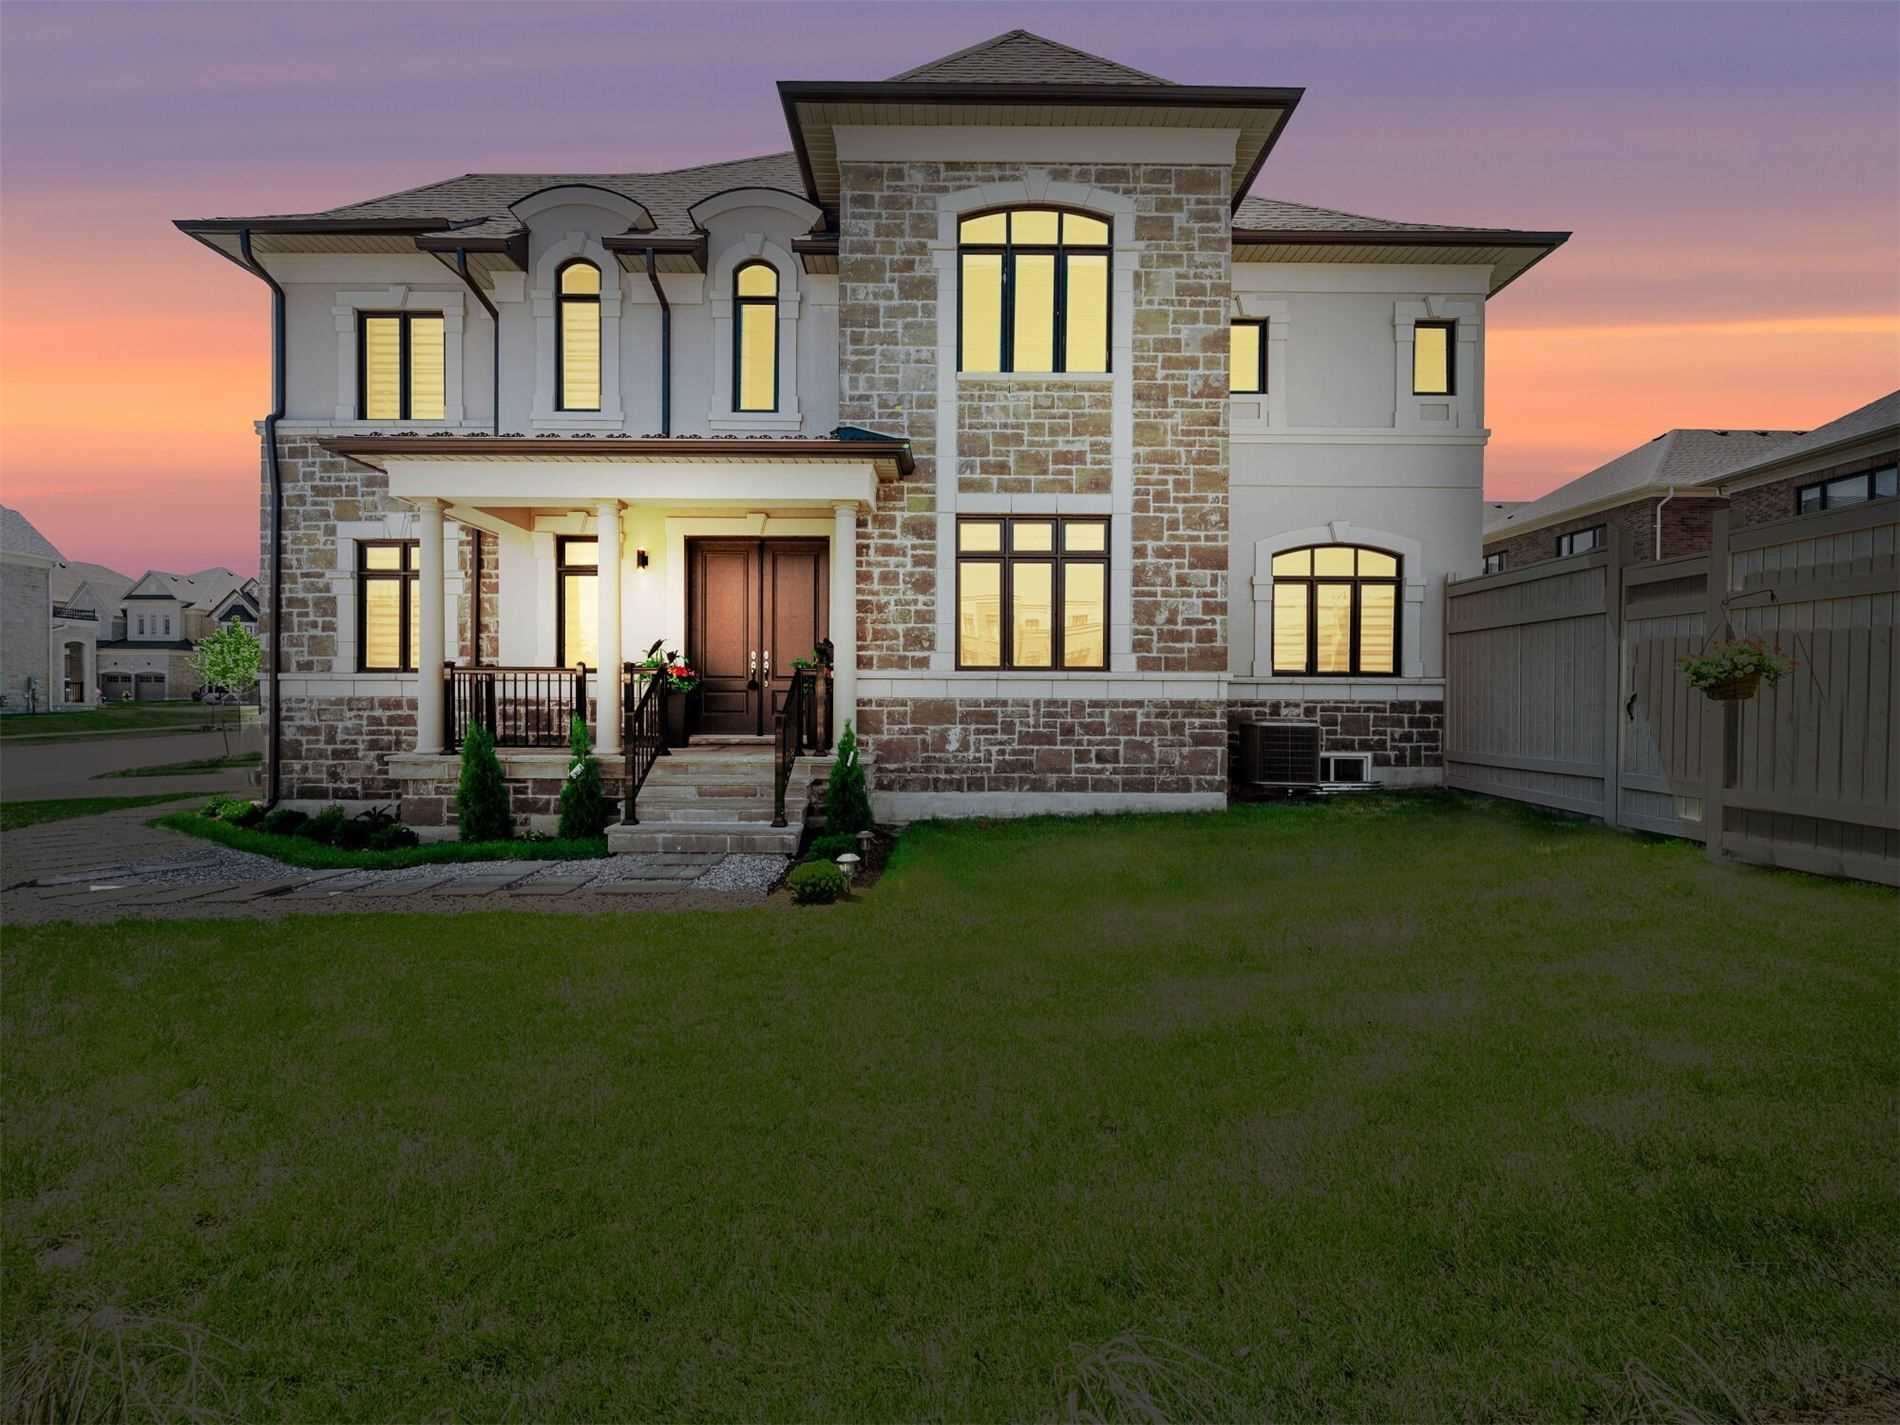 Detached house For Sale In Aurora - 36 Kaleia Ave, Aurora, Ontario, Canada L4G 3X4 , 4 Bedrooms Bedrooms, ,5 BathroomsBathrooms,Detached,For Sale,Kaleia